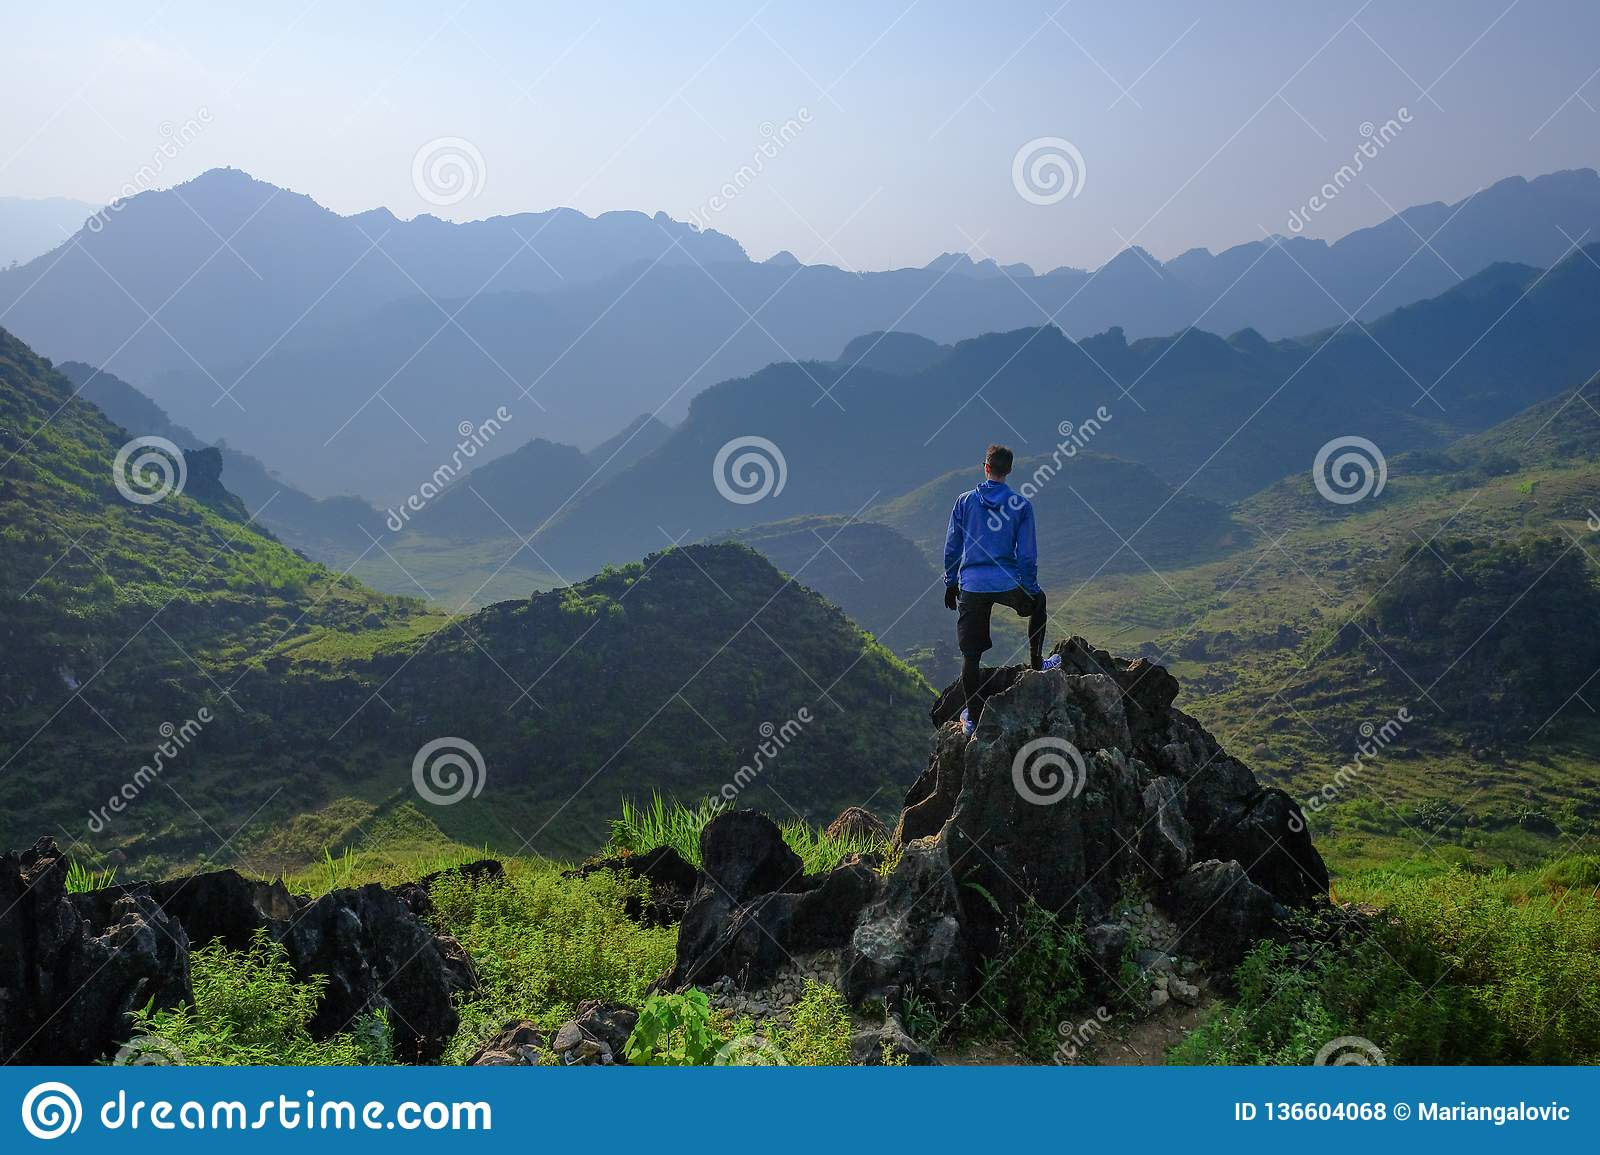 Ha Giang / Vietnam - 01/11/2017: Backpacker standing on outcrop overlooking karst mountain scenery in the North Vietnamese region